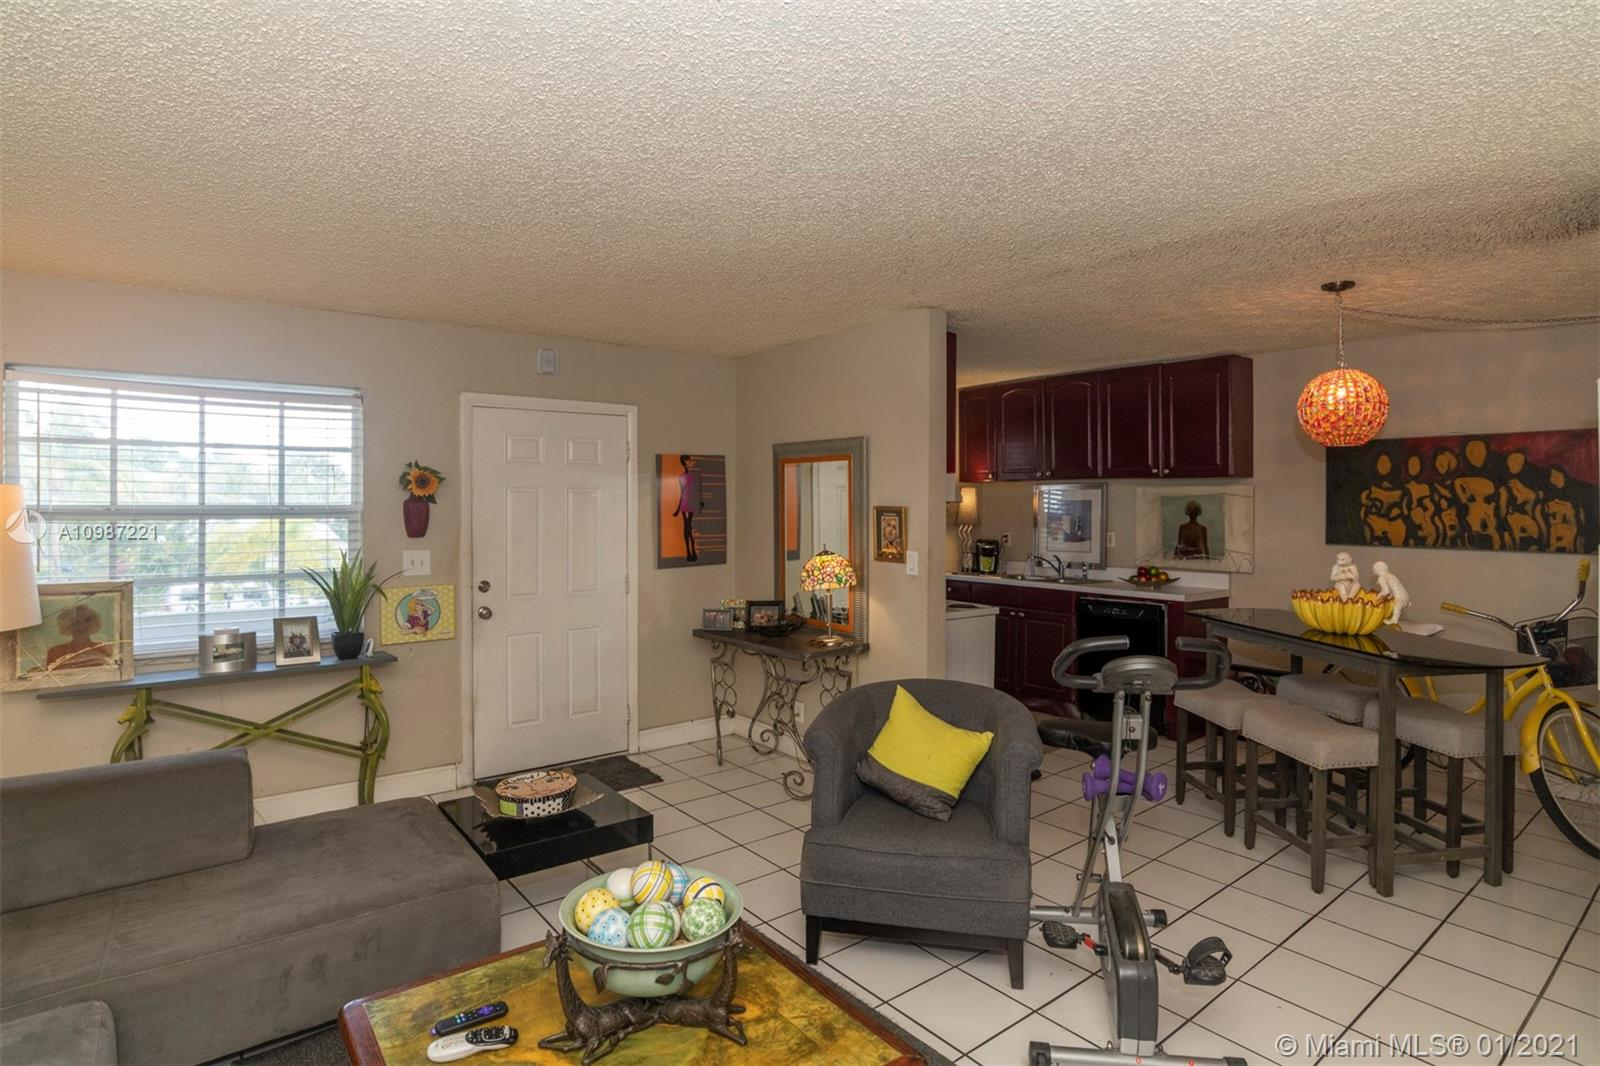 Location Location! Steps to Wilton Drive and with assigned parking space.  This adorable 2nd floor one bedroom/one bath condo features tile floors and open kitchen, living, and dining areas. Great location for your Wilton Manors escape/2nd home or as an investment - tenant has been there 8 years. Either way, can't lose! Complex is maintained well - can go in and make the interior your own! Under a lease  until May 31 but can arrange showings with an appointment. One of the best investments you will make this year. All impact windows with new AC and water heater in 2018